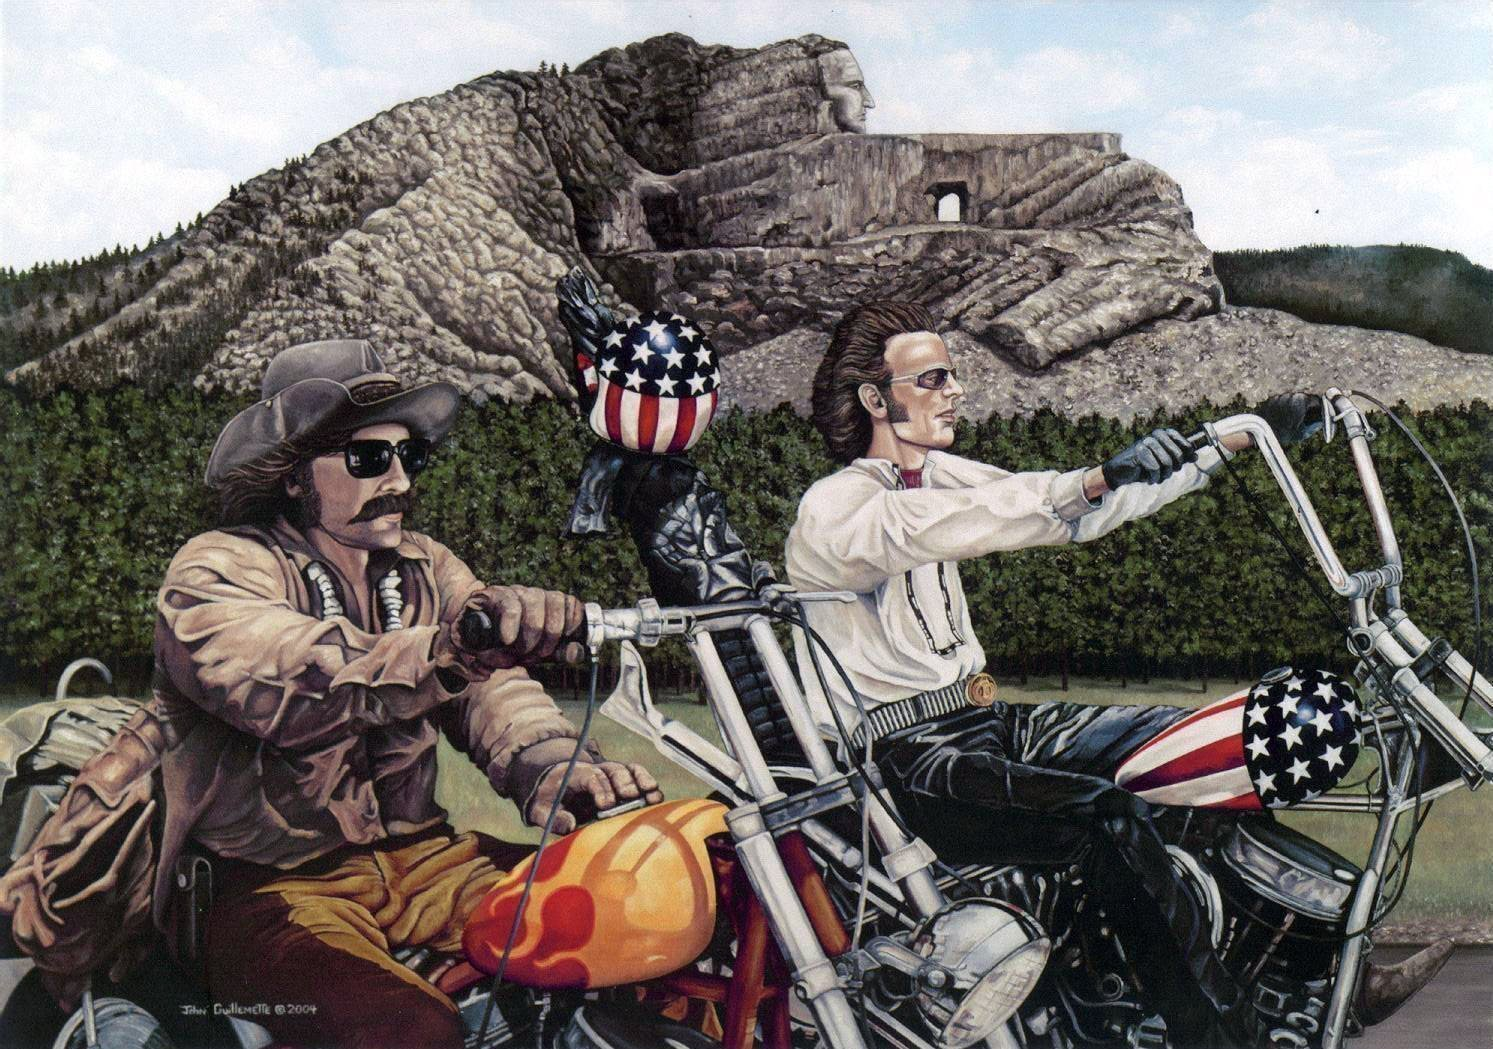 Easy Rider theme Biker Wall Art, 18x24 Motorcycle Art Print, Hand Signed by Artist, Sturgis, Crazy Horse Monument, Custer South Dakota - Original Painting by Guillemette